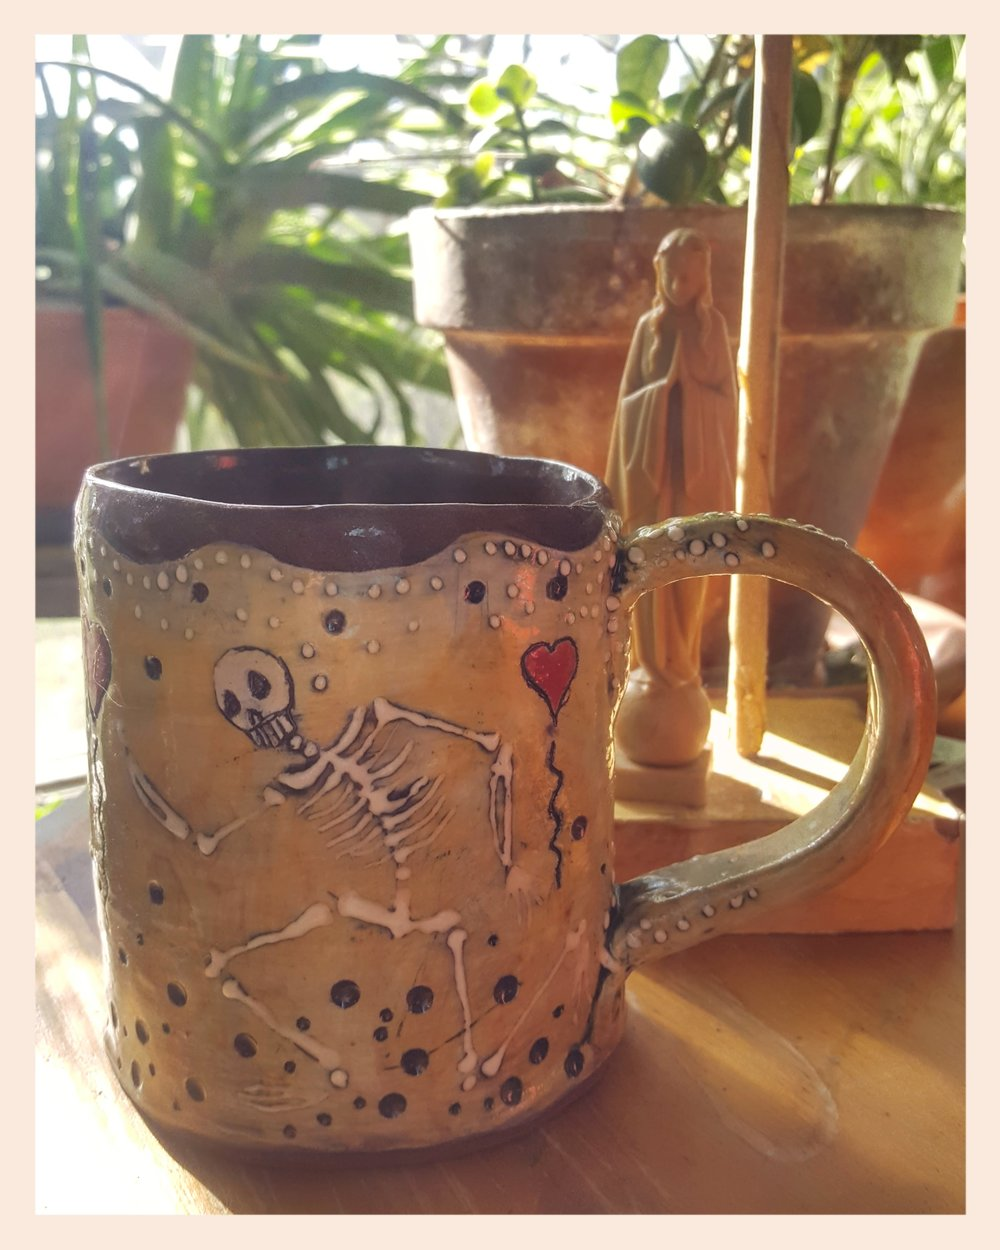 This is an amazing skeleton tea cup from  Sandra Civitarese of Pigasus Art Studio